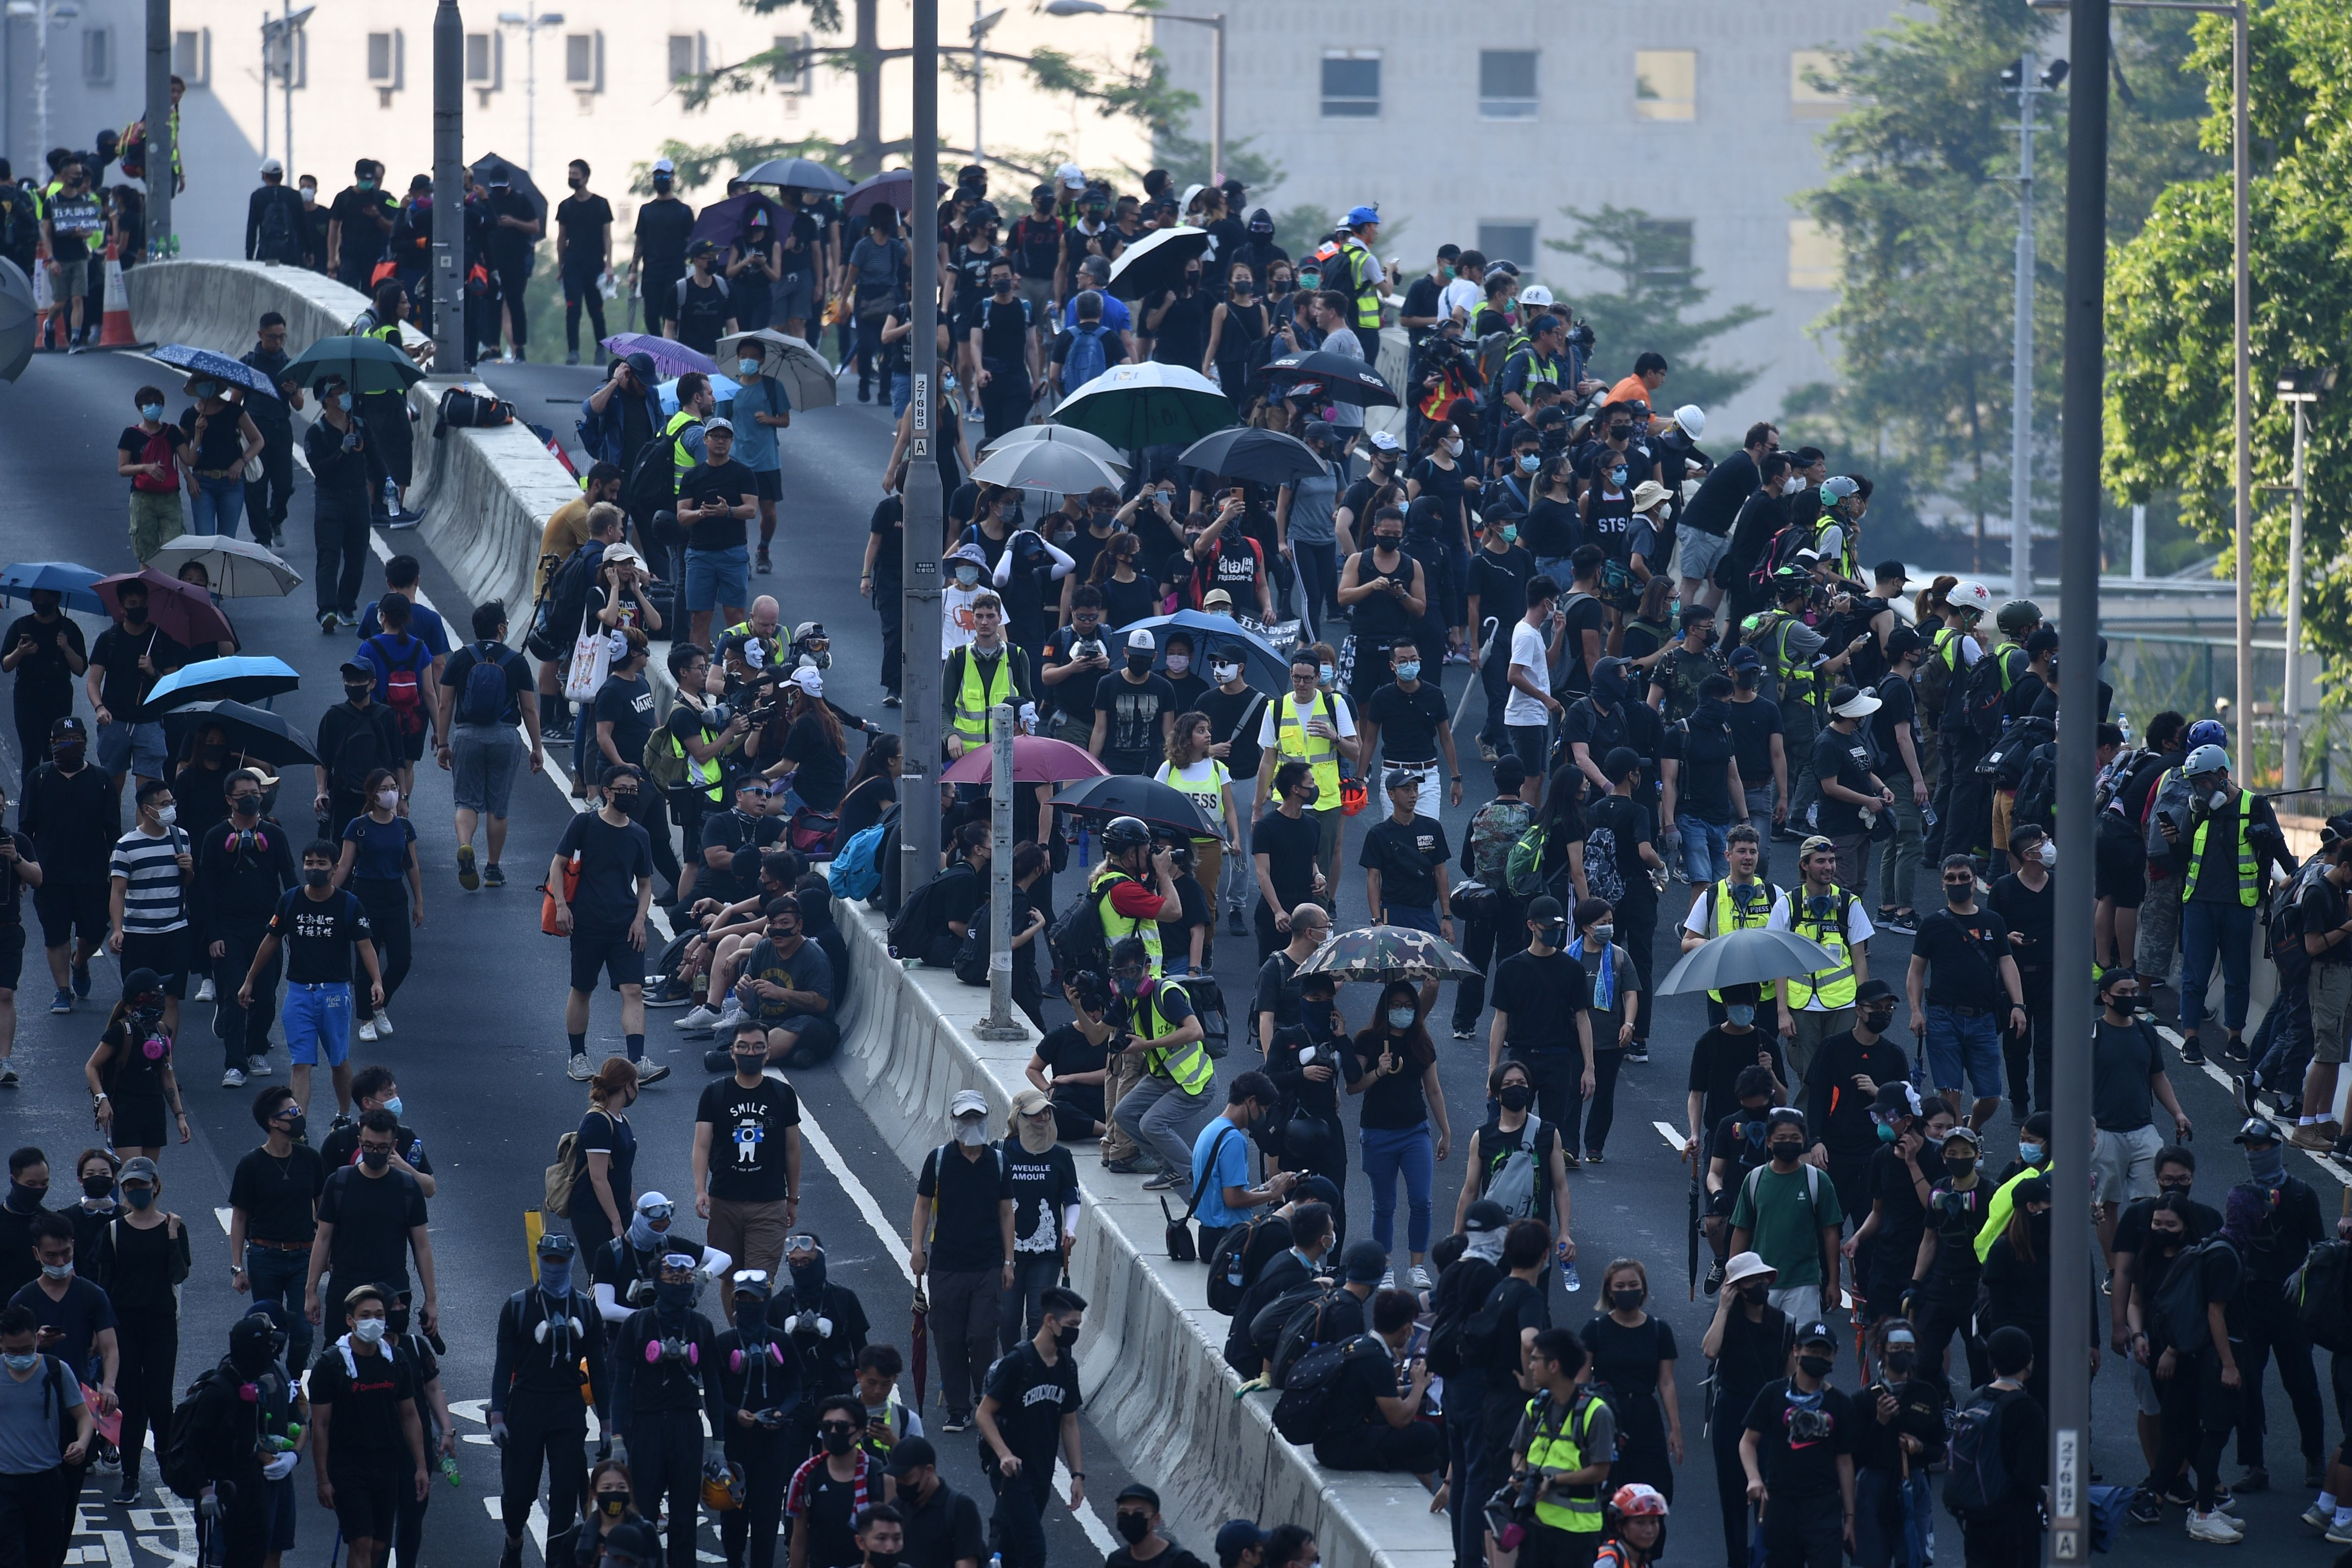 A Hong Kong man has been shot by police, says a police source